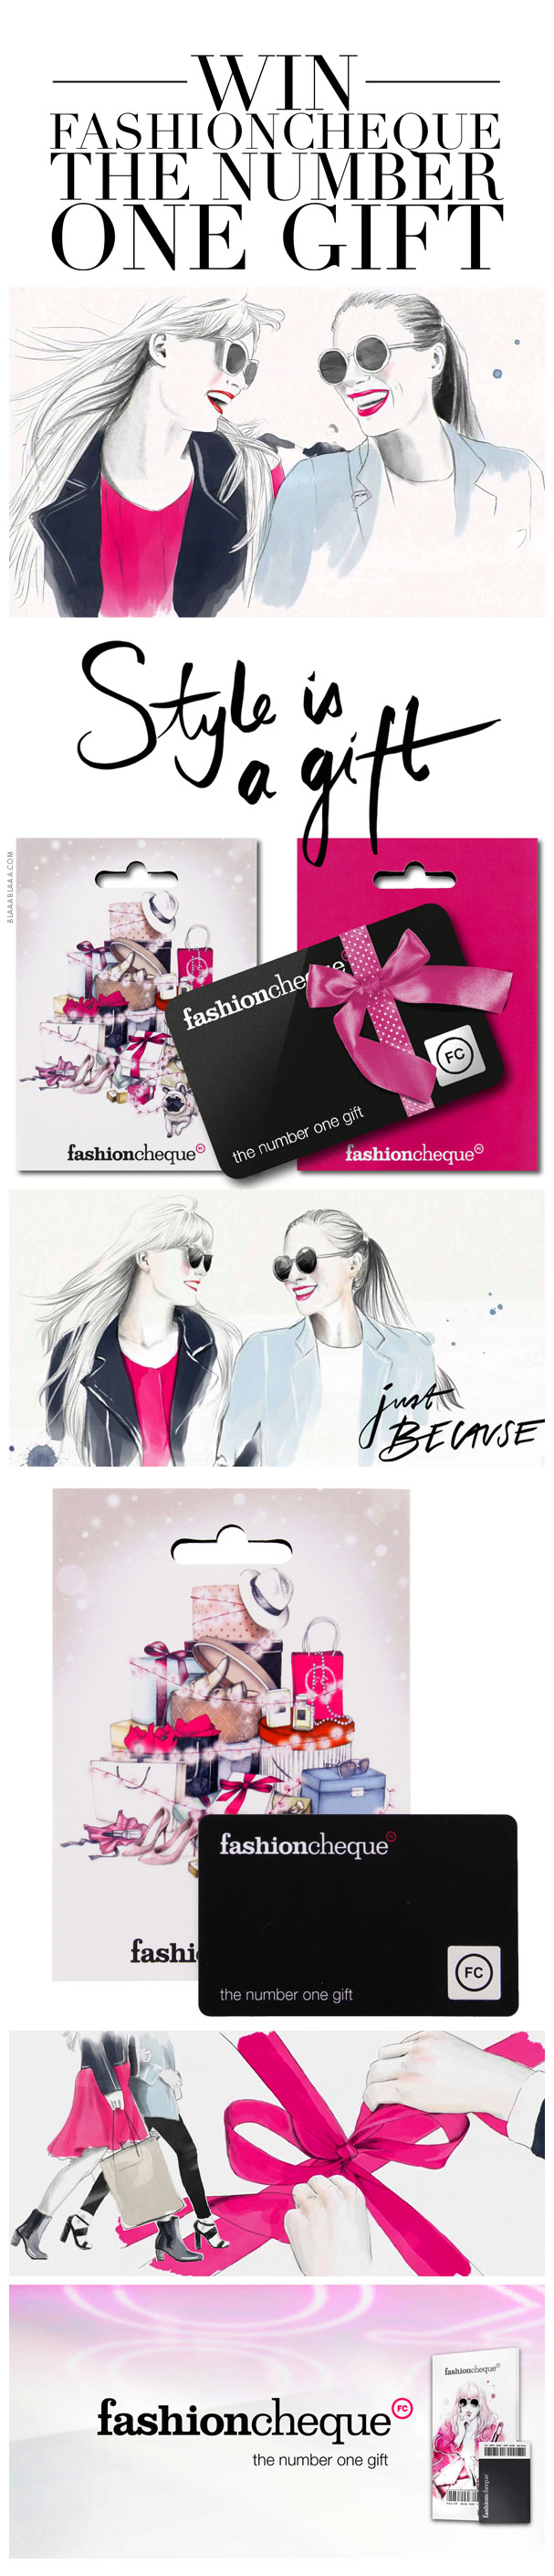 9344351cc99045 Win 5 x 1 fashioncheque «The Number One Gift»!